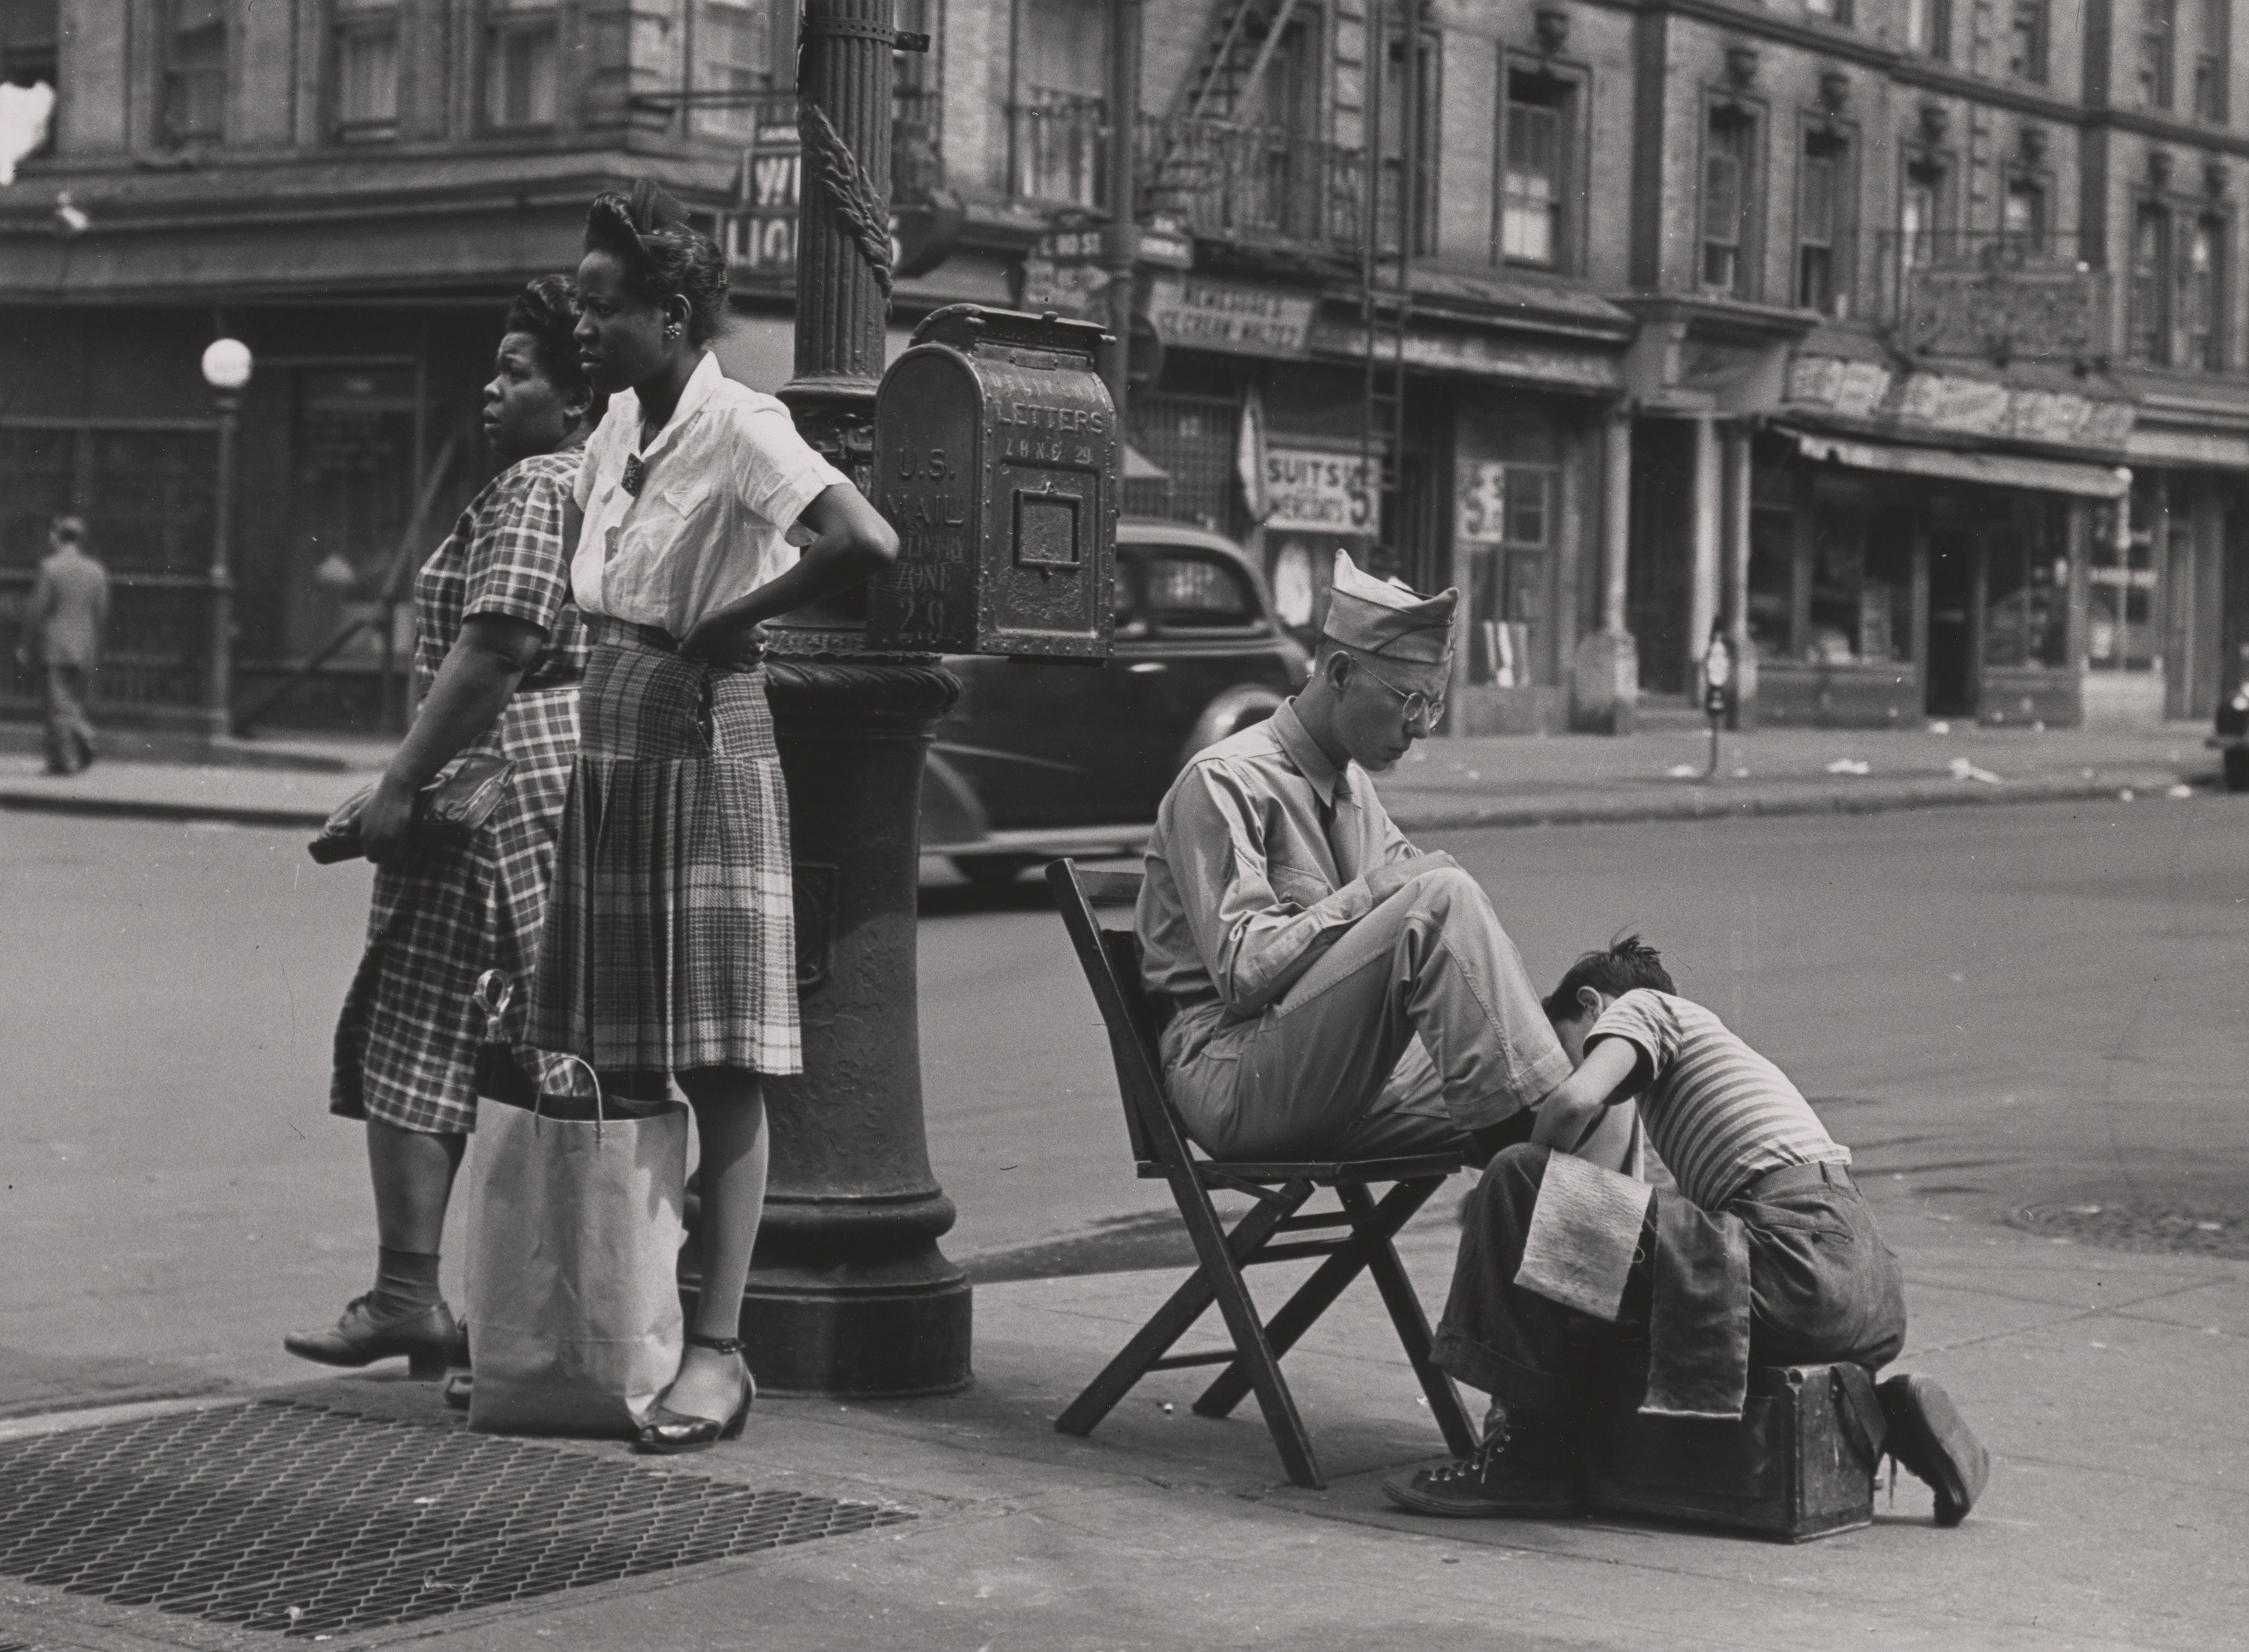 [Lexington Avenue, Near 110th Street, Harlem], 1946